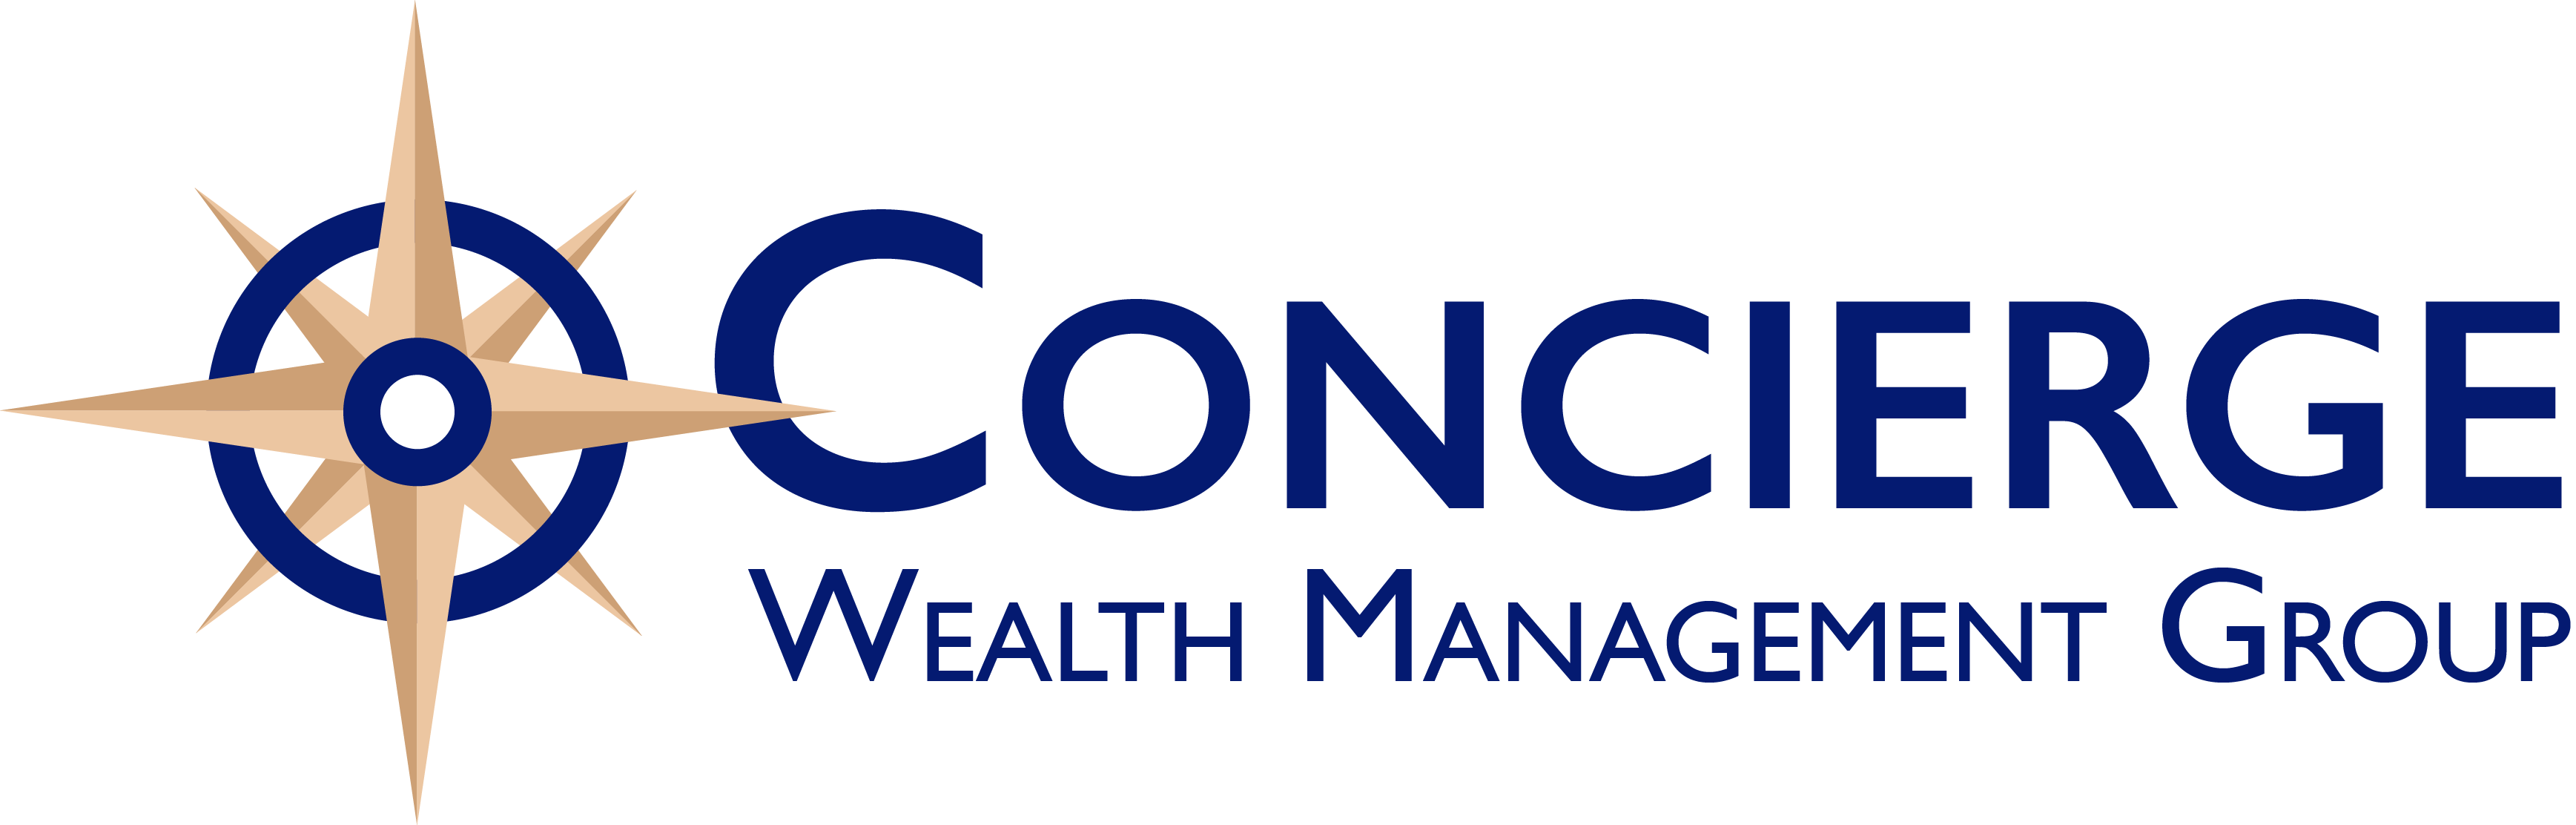 Concierge Wealth Management Group